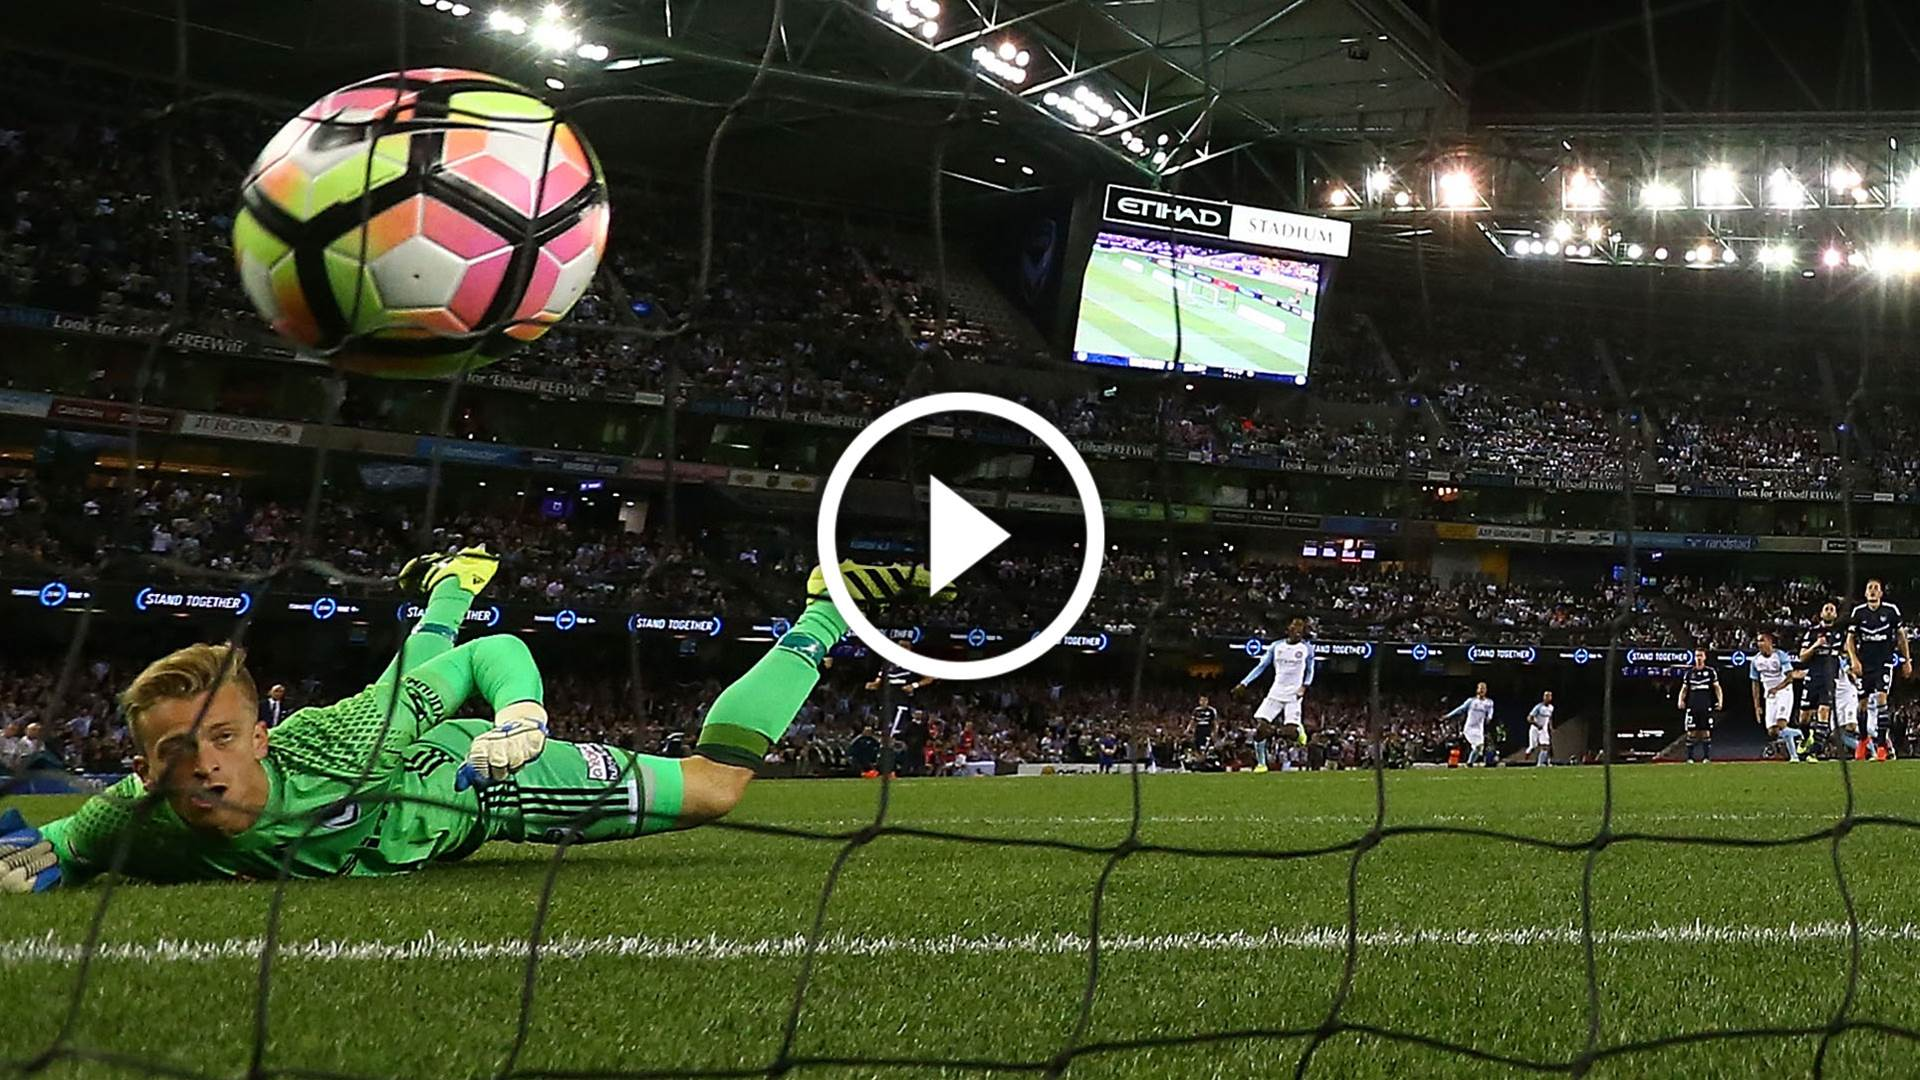 Cahill 40m strike wins A-League Goal of the Year